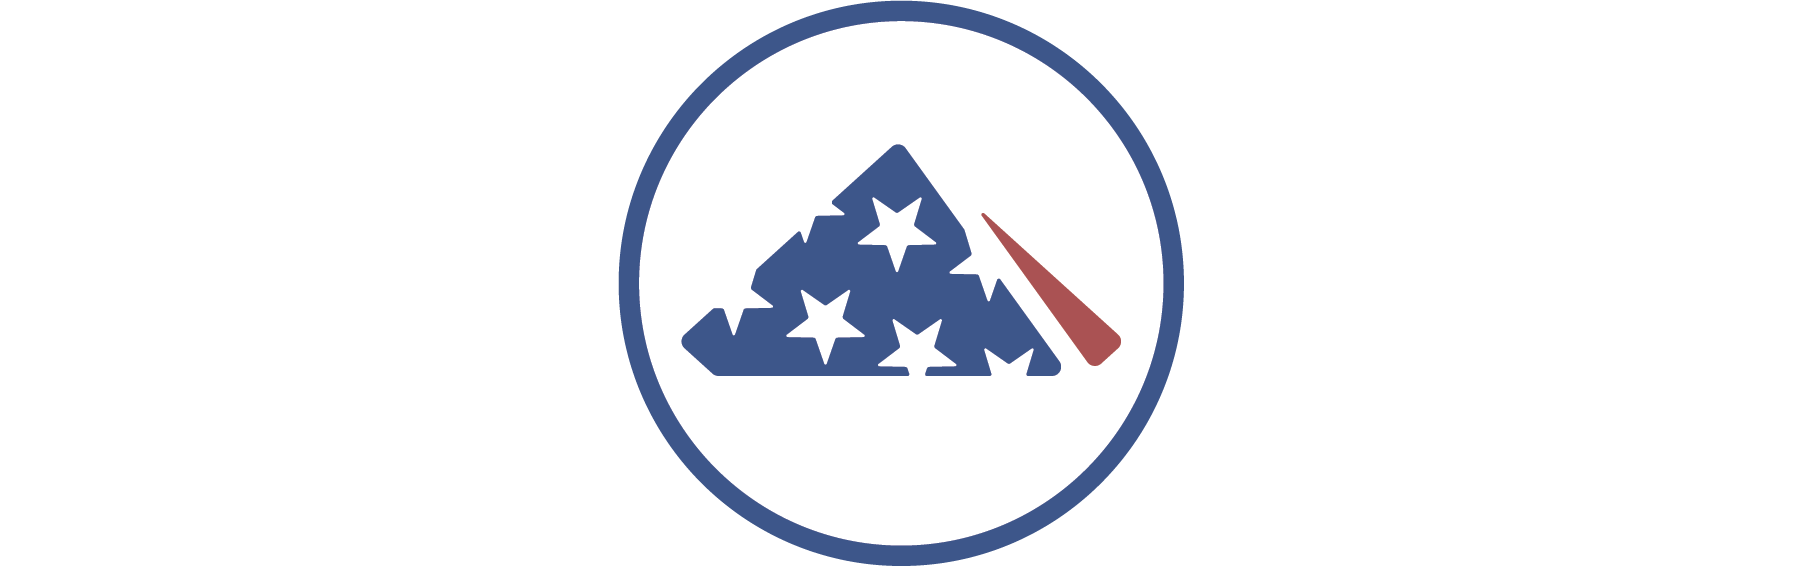 Patriot City-Badge Mark_Footer.png